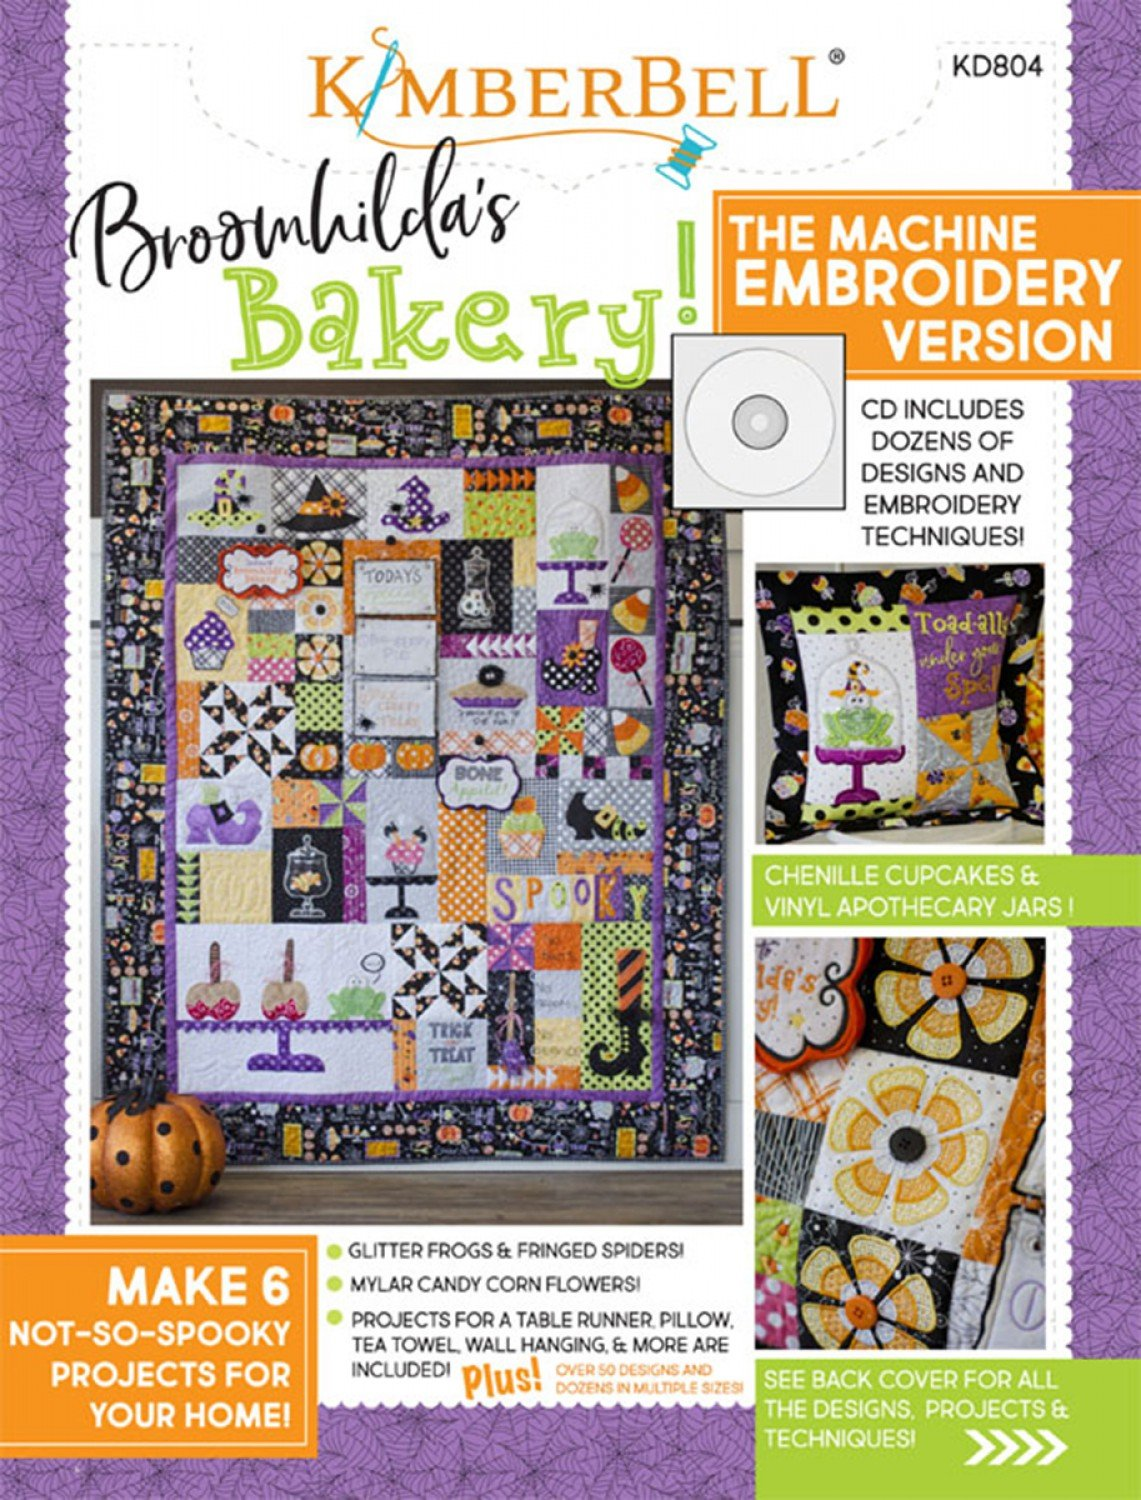 Broomhilda's Bakery (Embroidery CD) by Kimberbell